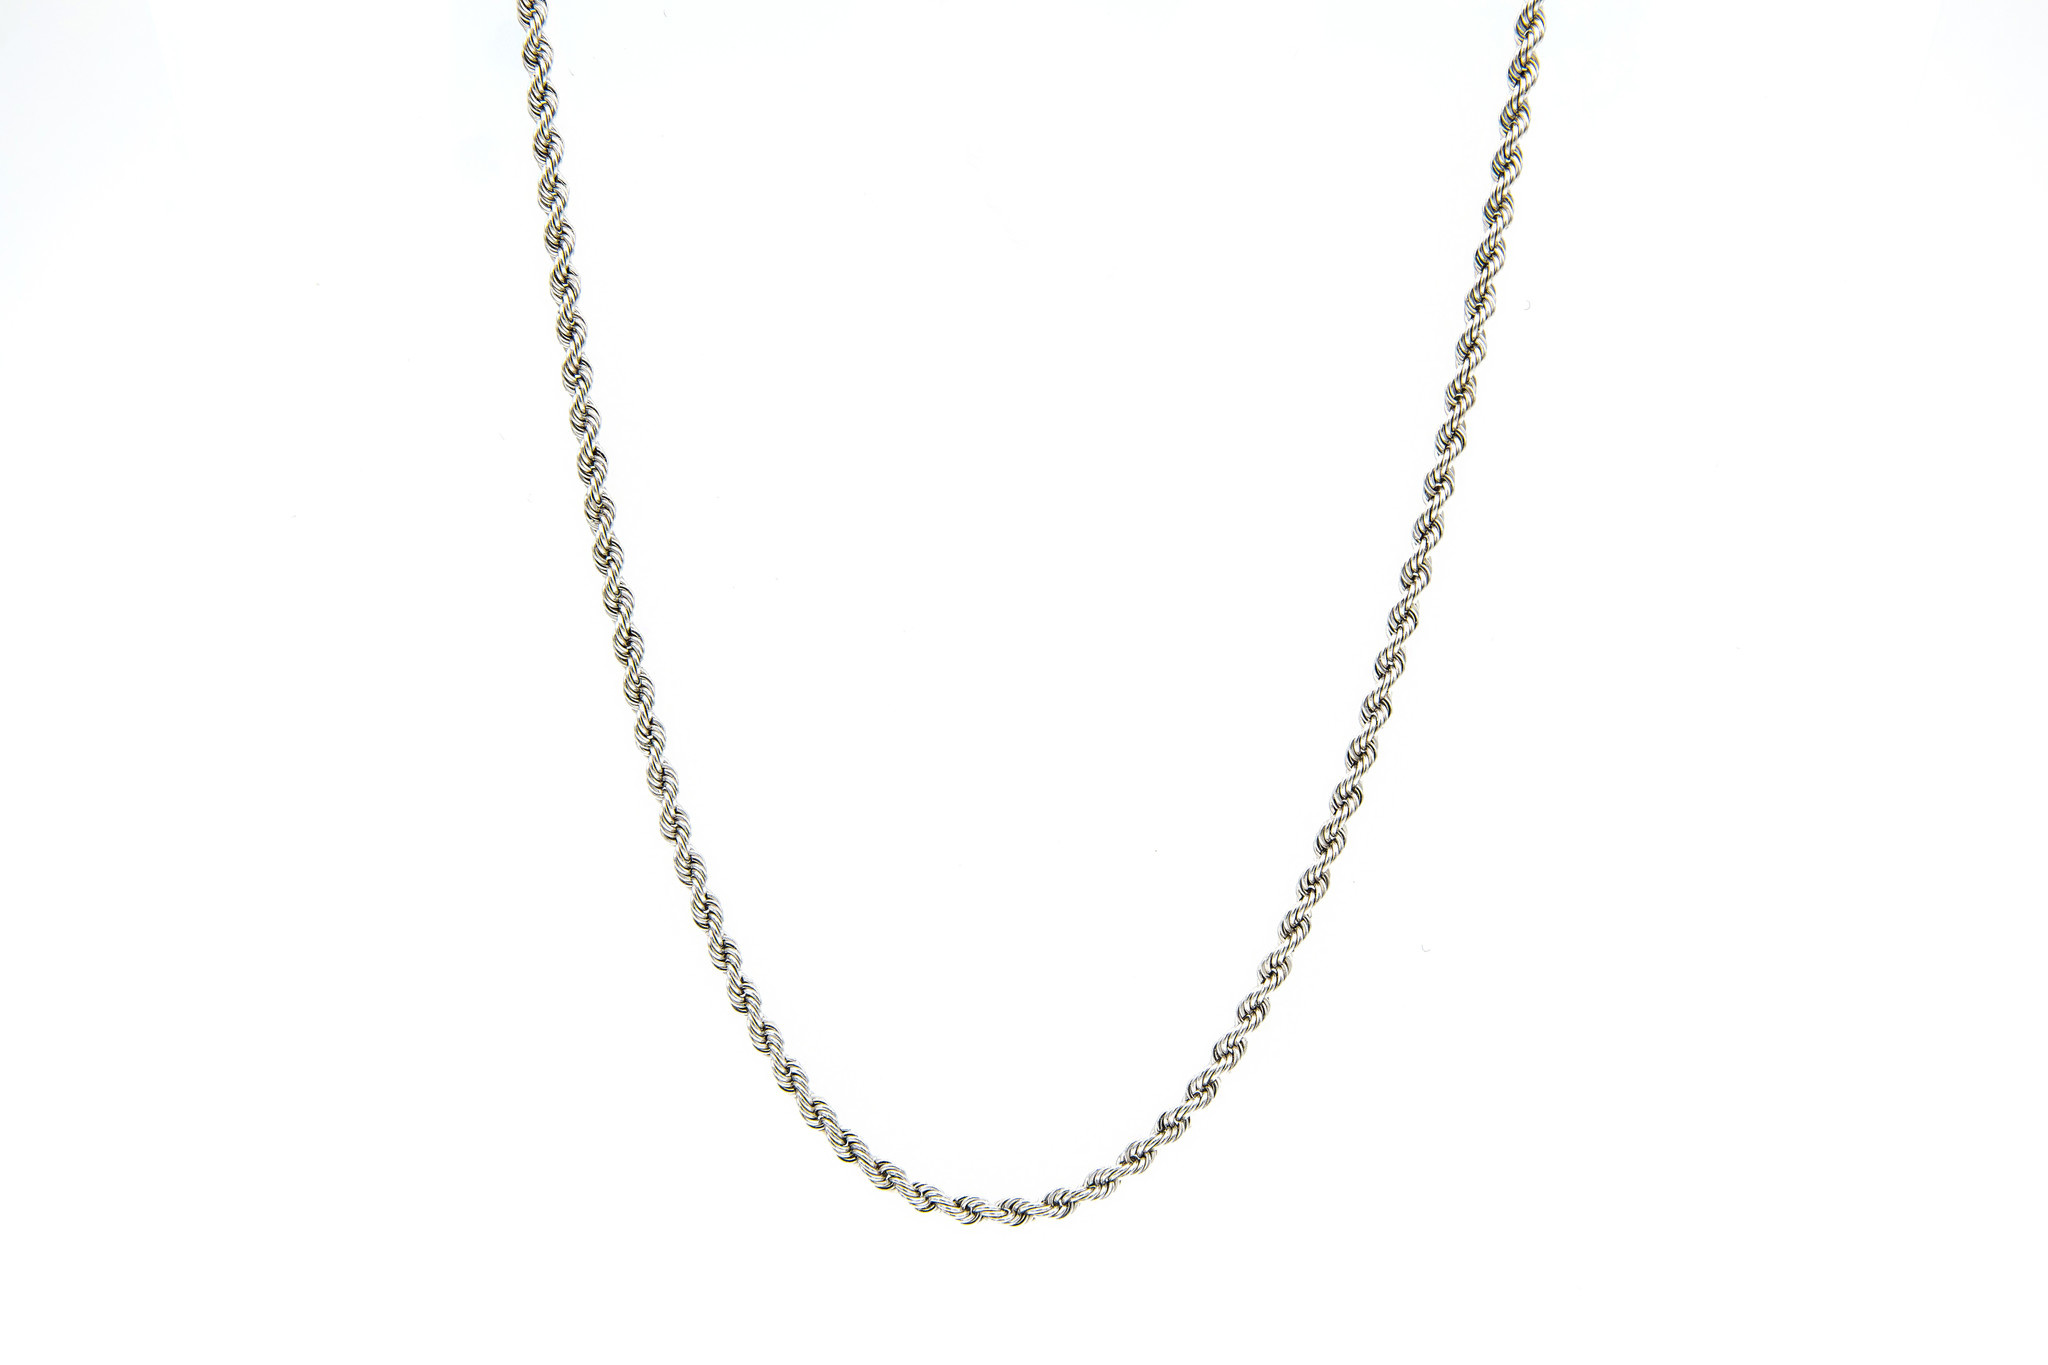 Rope chain witgoud 14kt 3.5mm-5